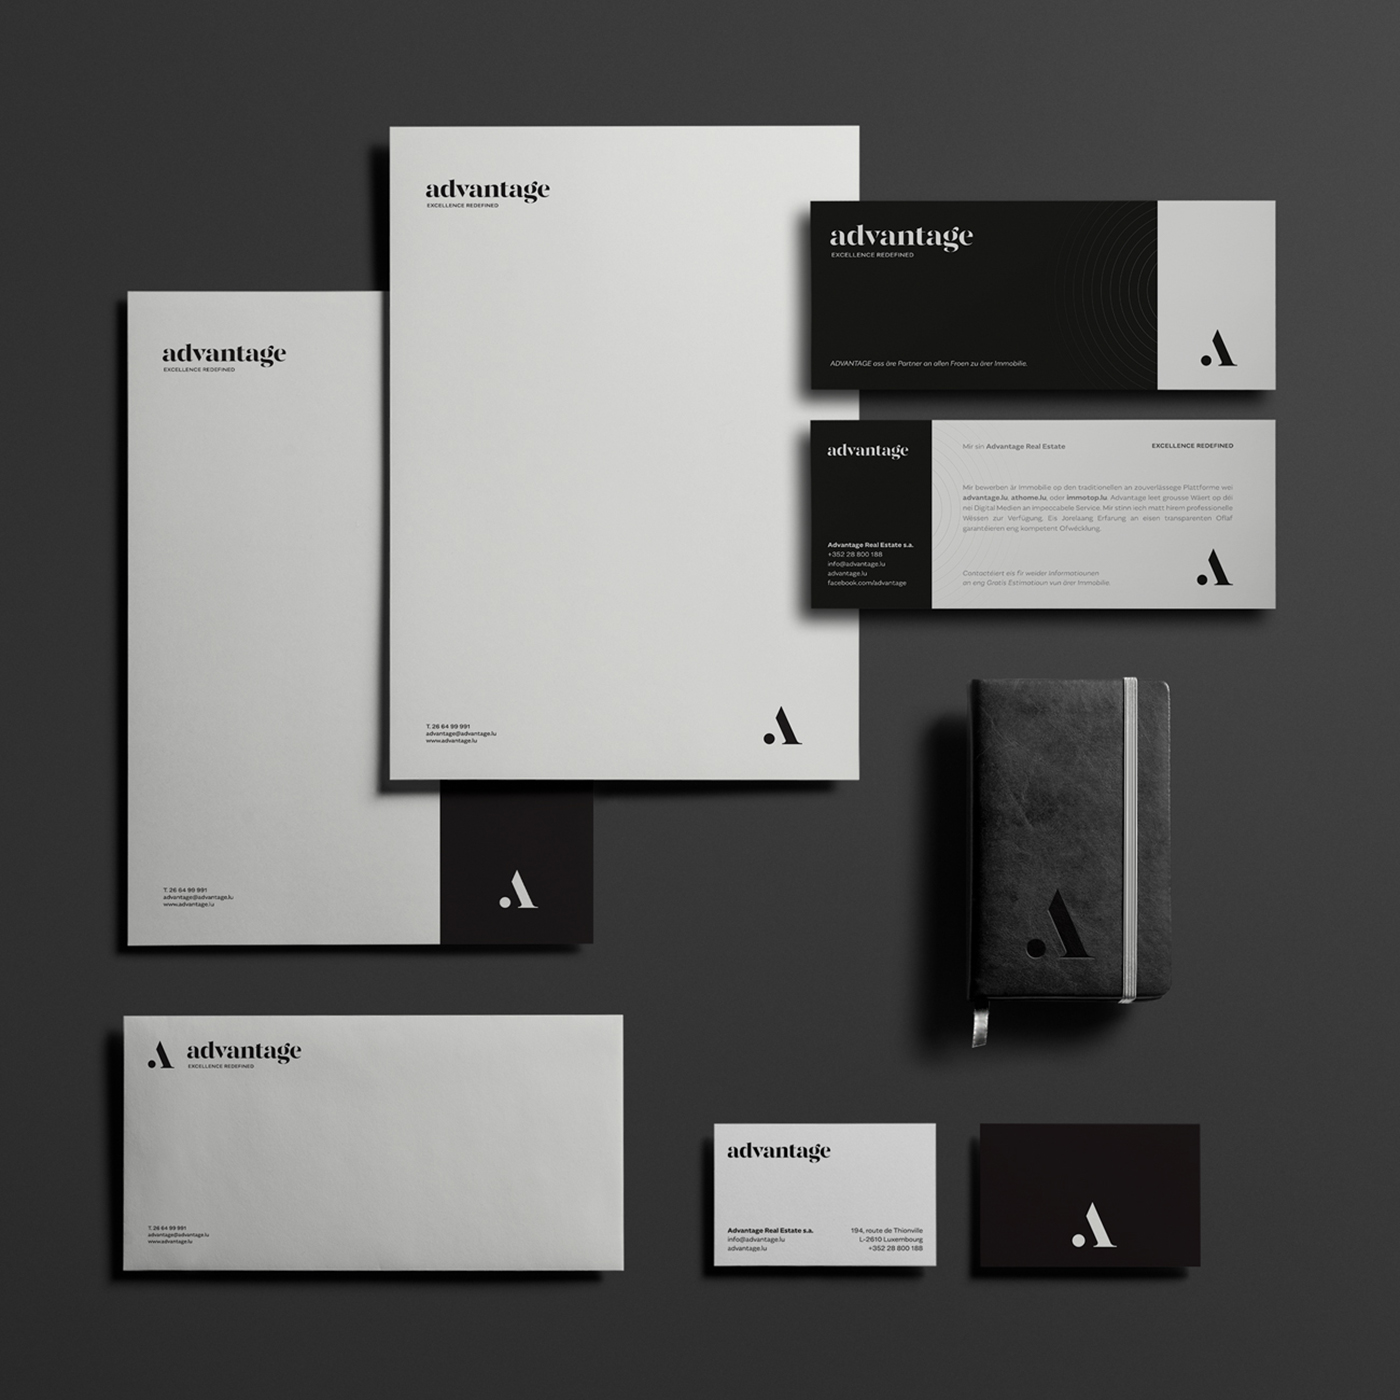 Advantage-stationery-01